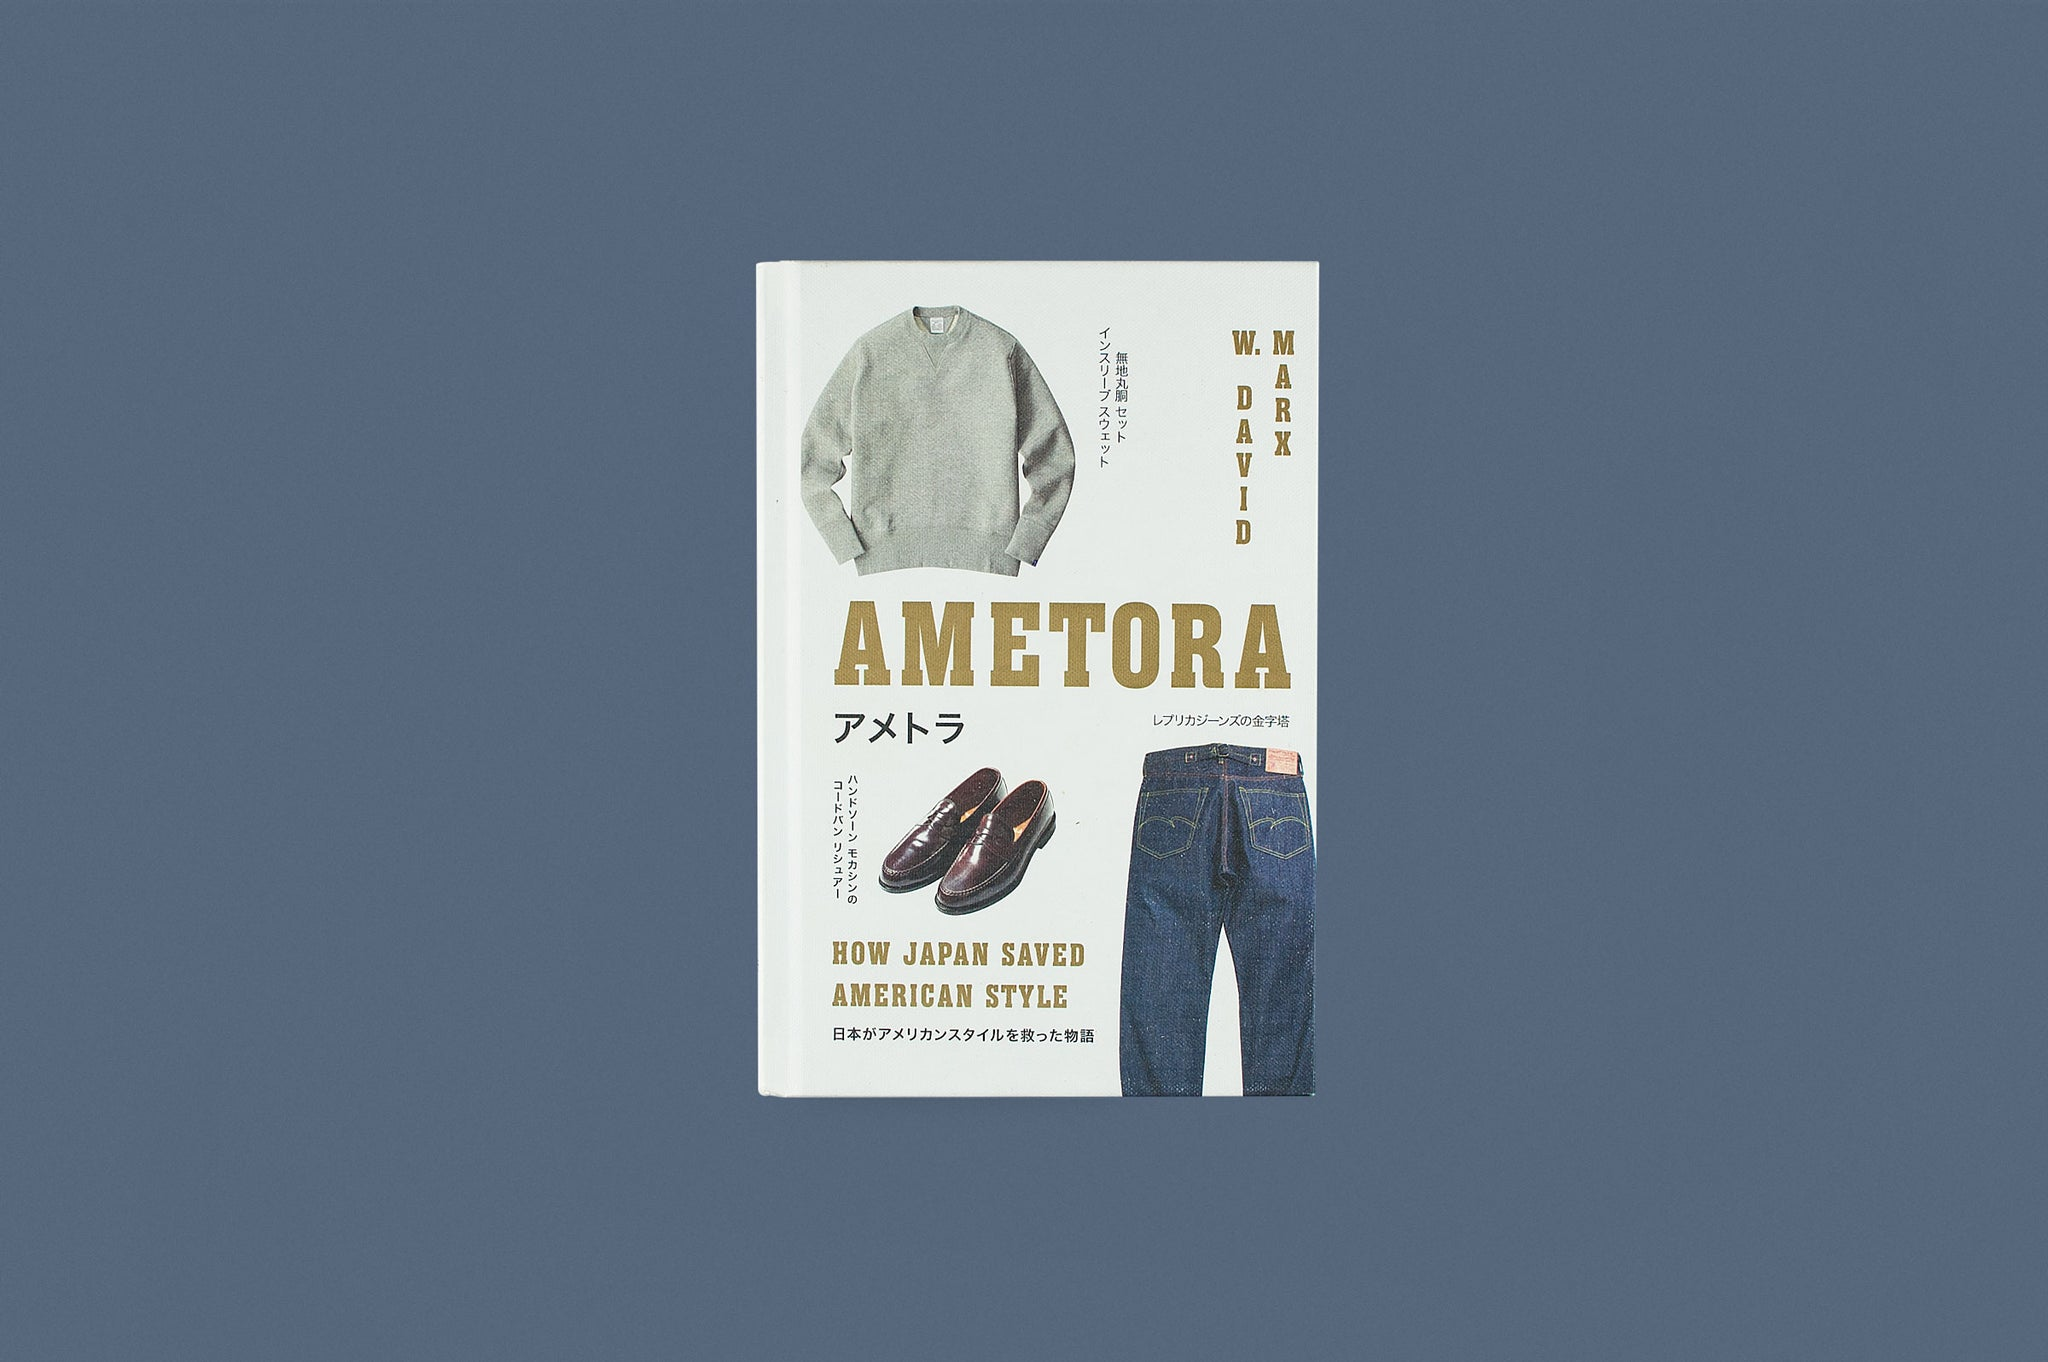 Ametora Book Review